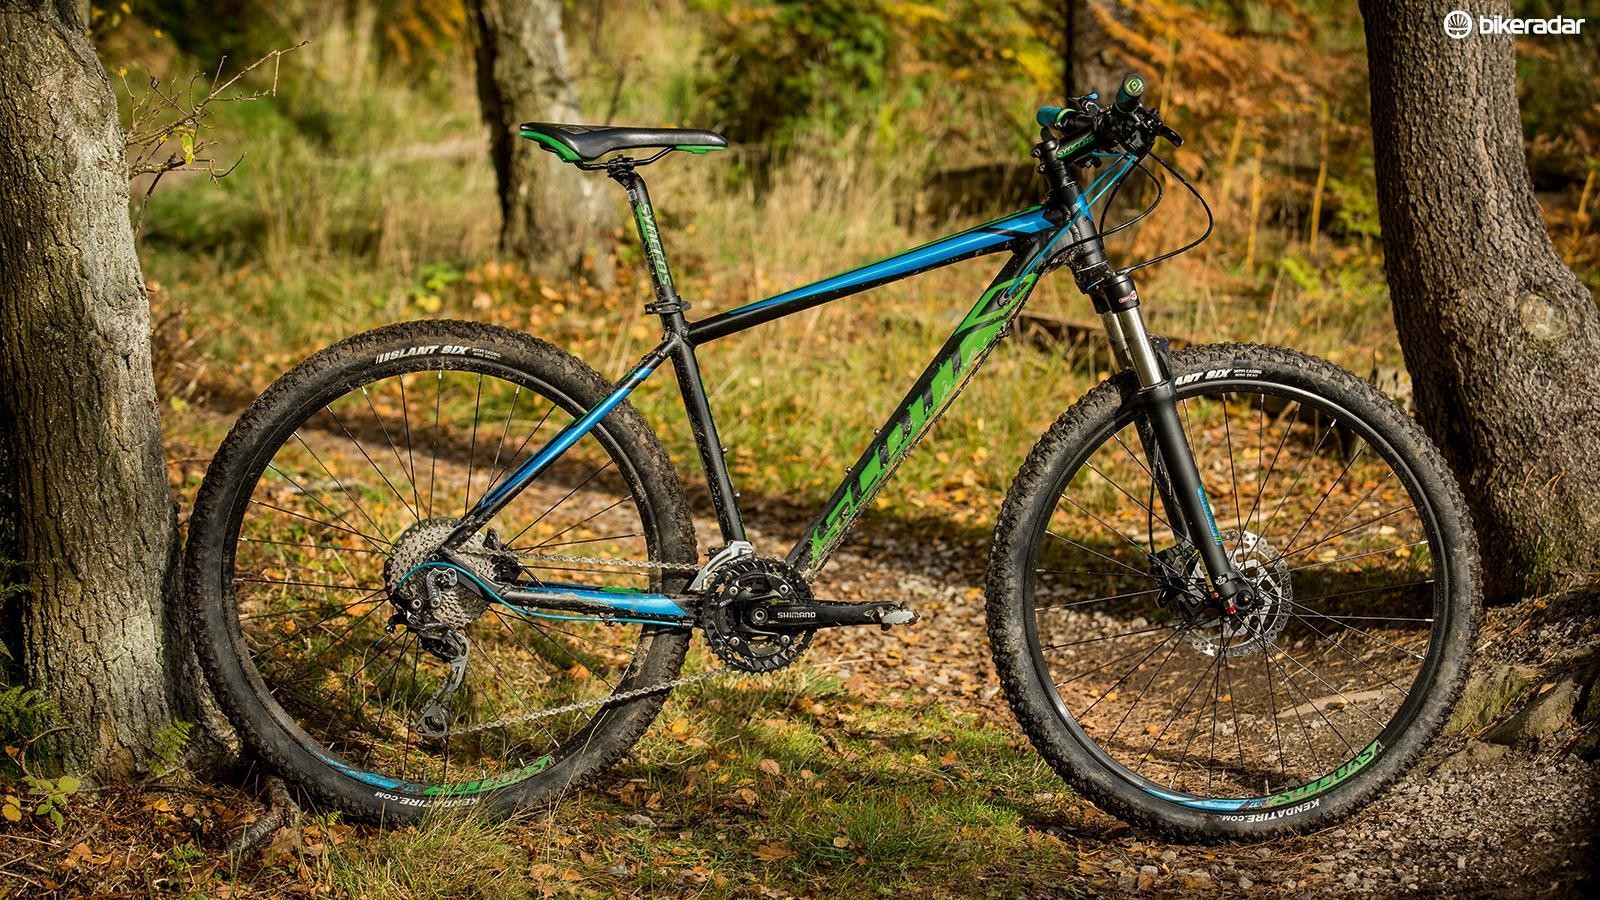 Scott's Aspect 720 is a punchy enough companion, though it's hefty and not especially well kitted